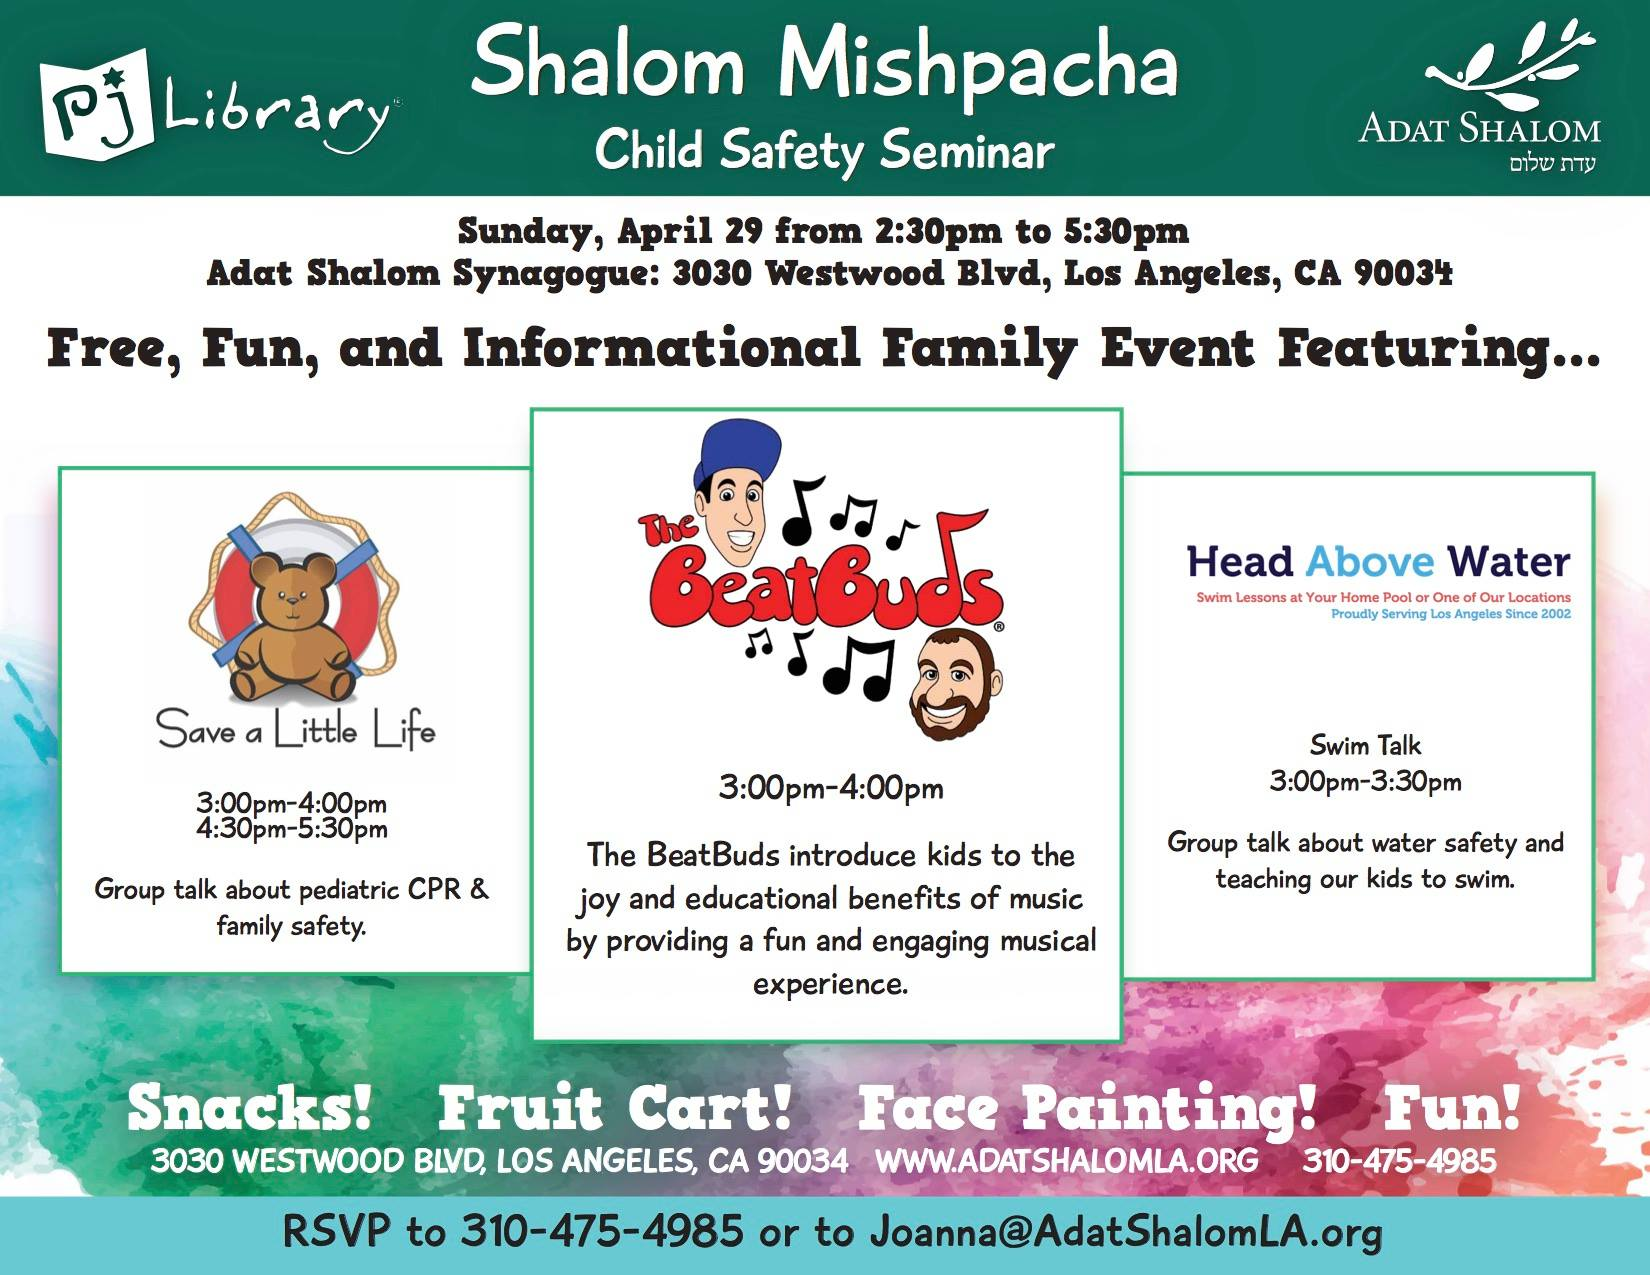 Shalom Misphacha Child Safety Seminar @ Adat Shalom Synagogue | Los Angeles | California | United States